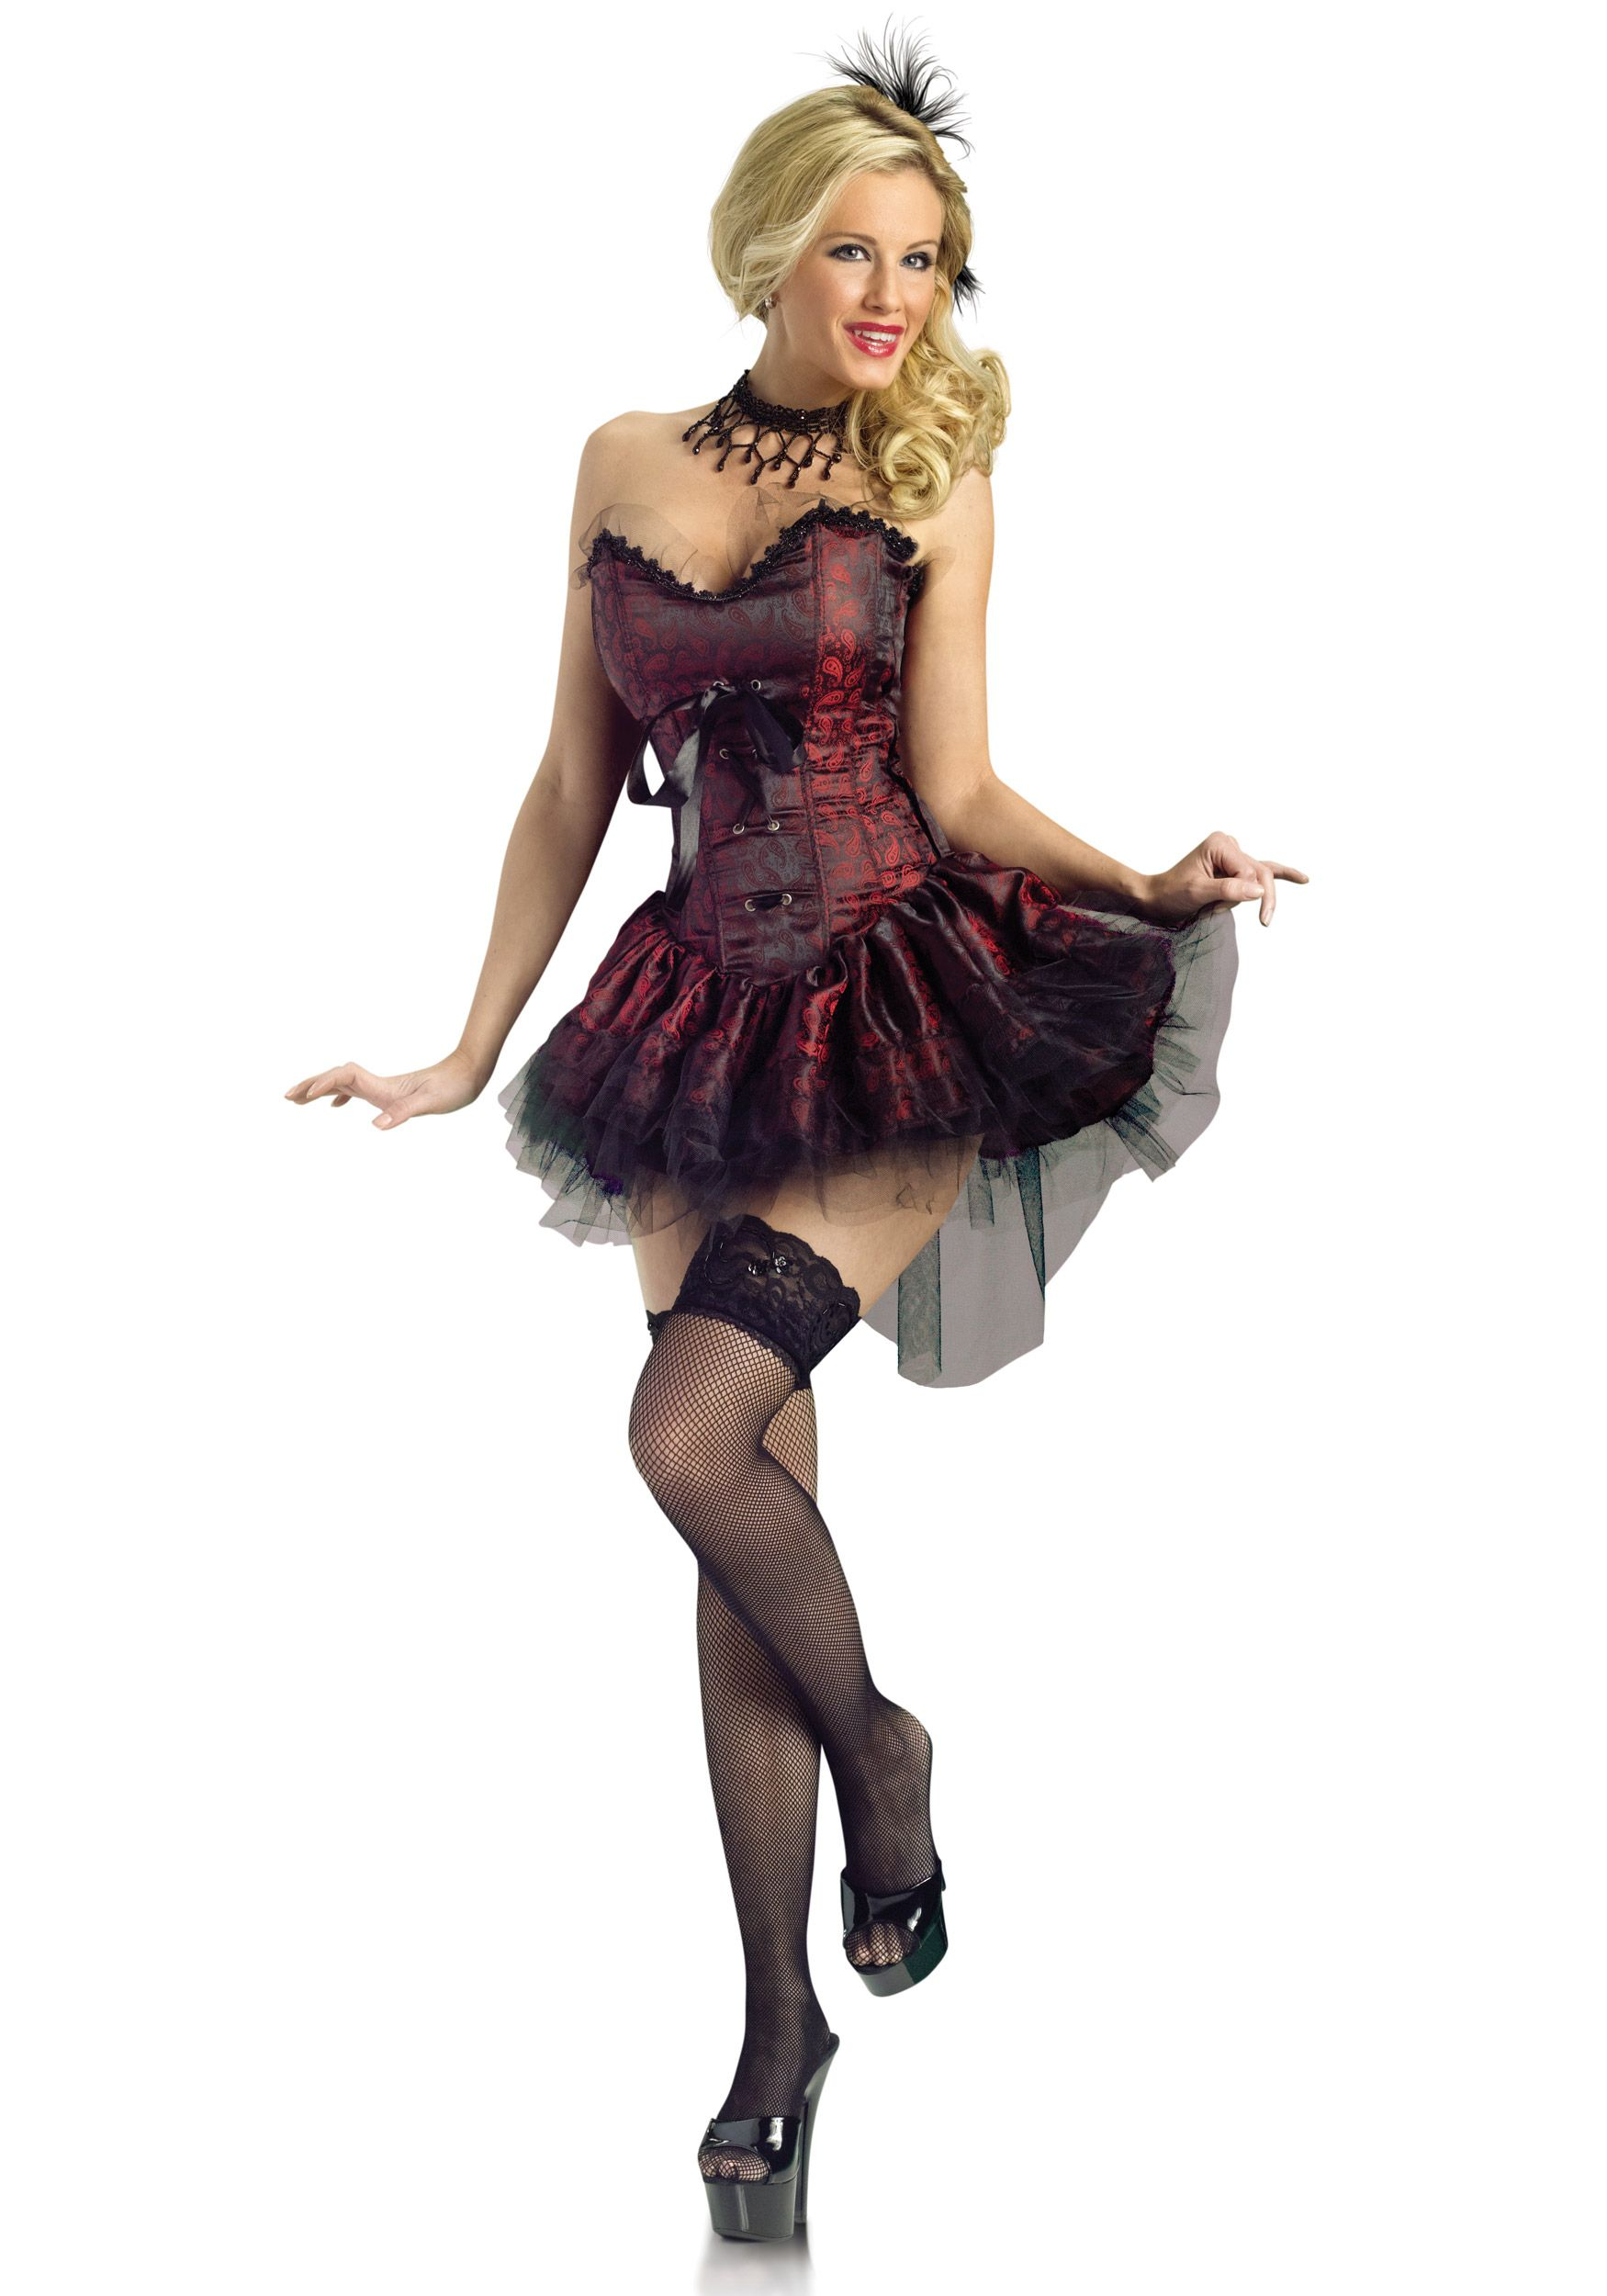 vegas costumes | Home Costume Ideas Through the Years Costumes ...